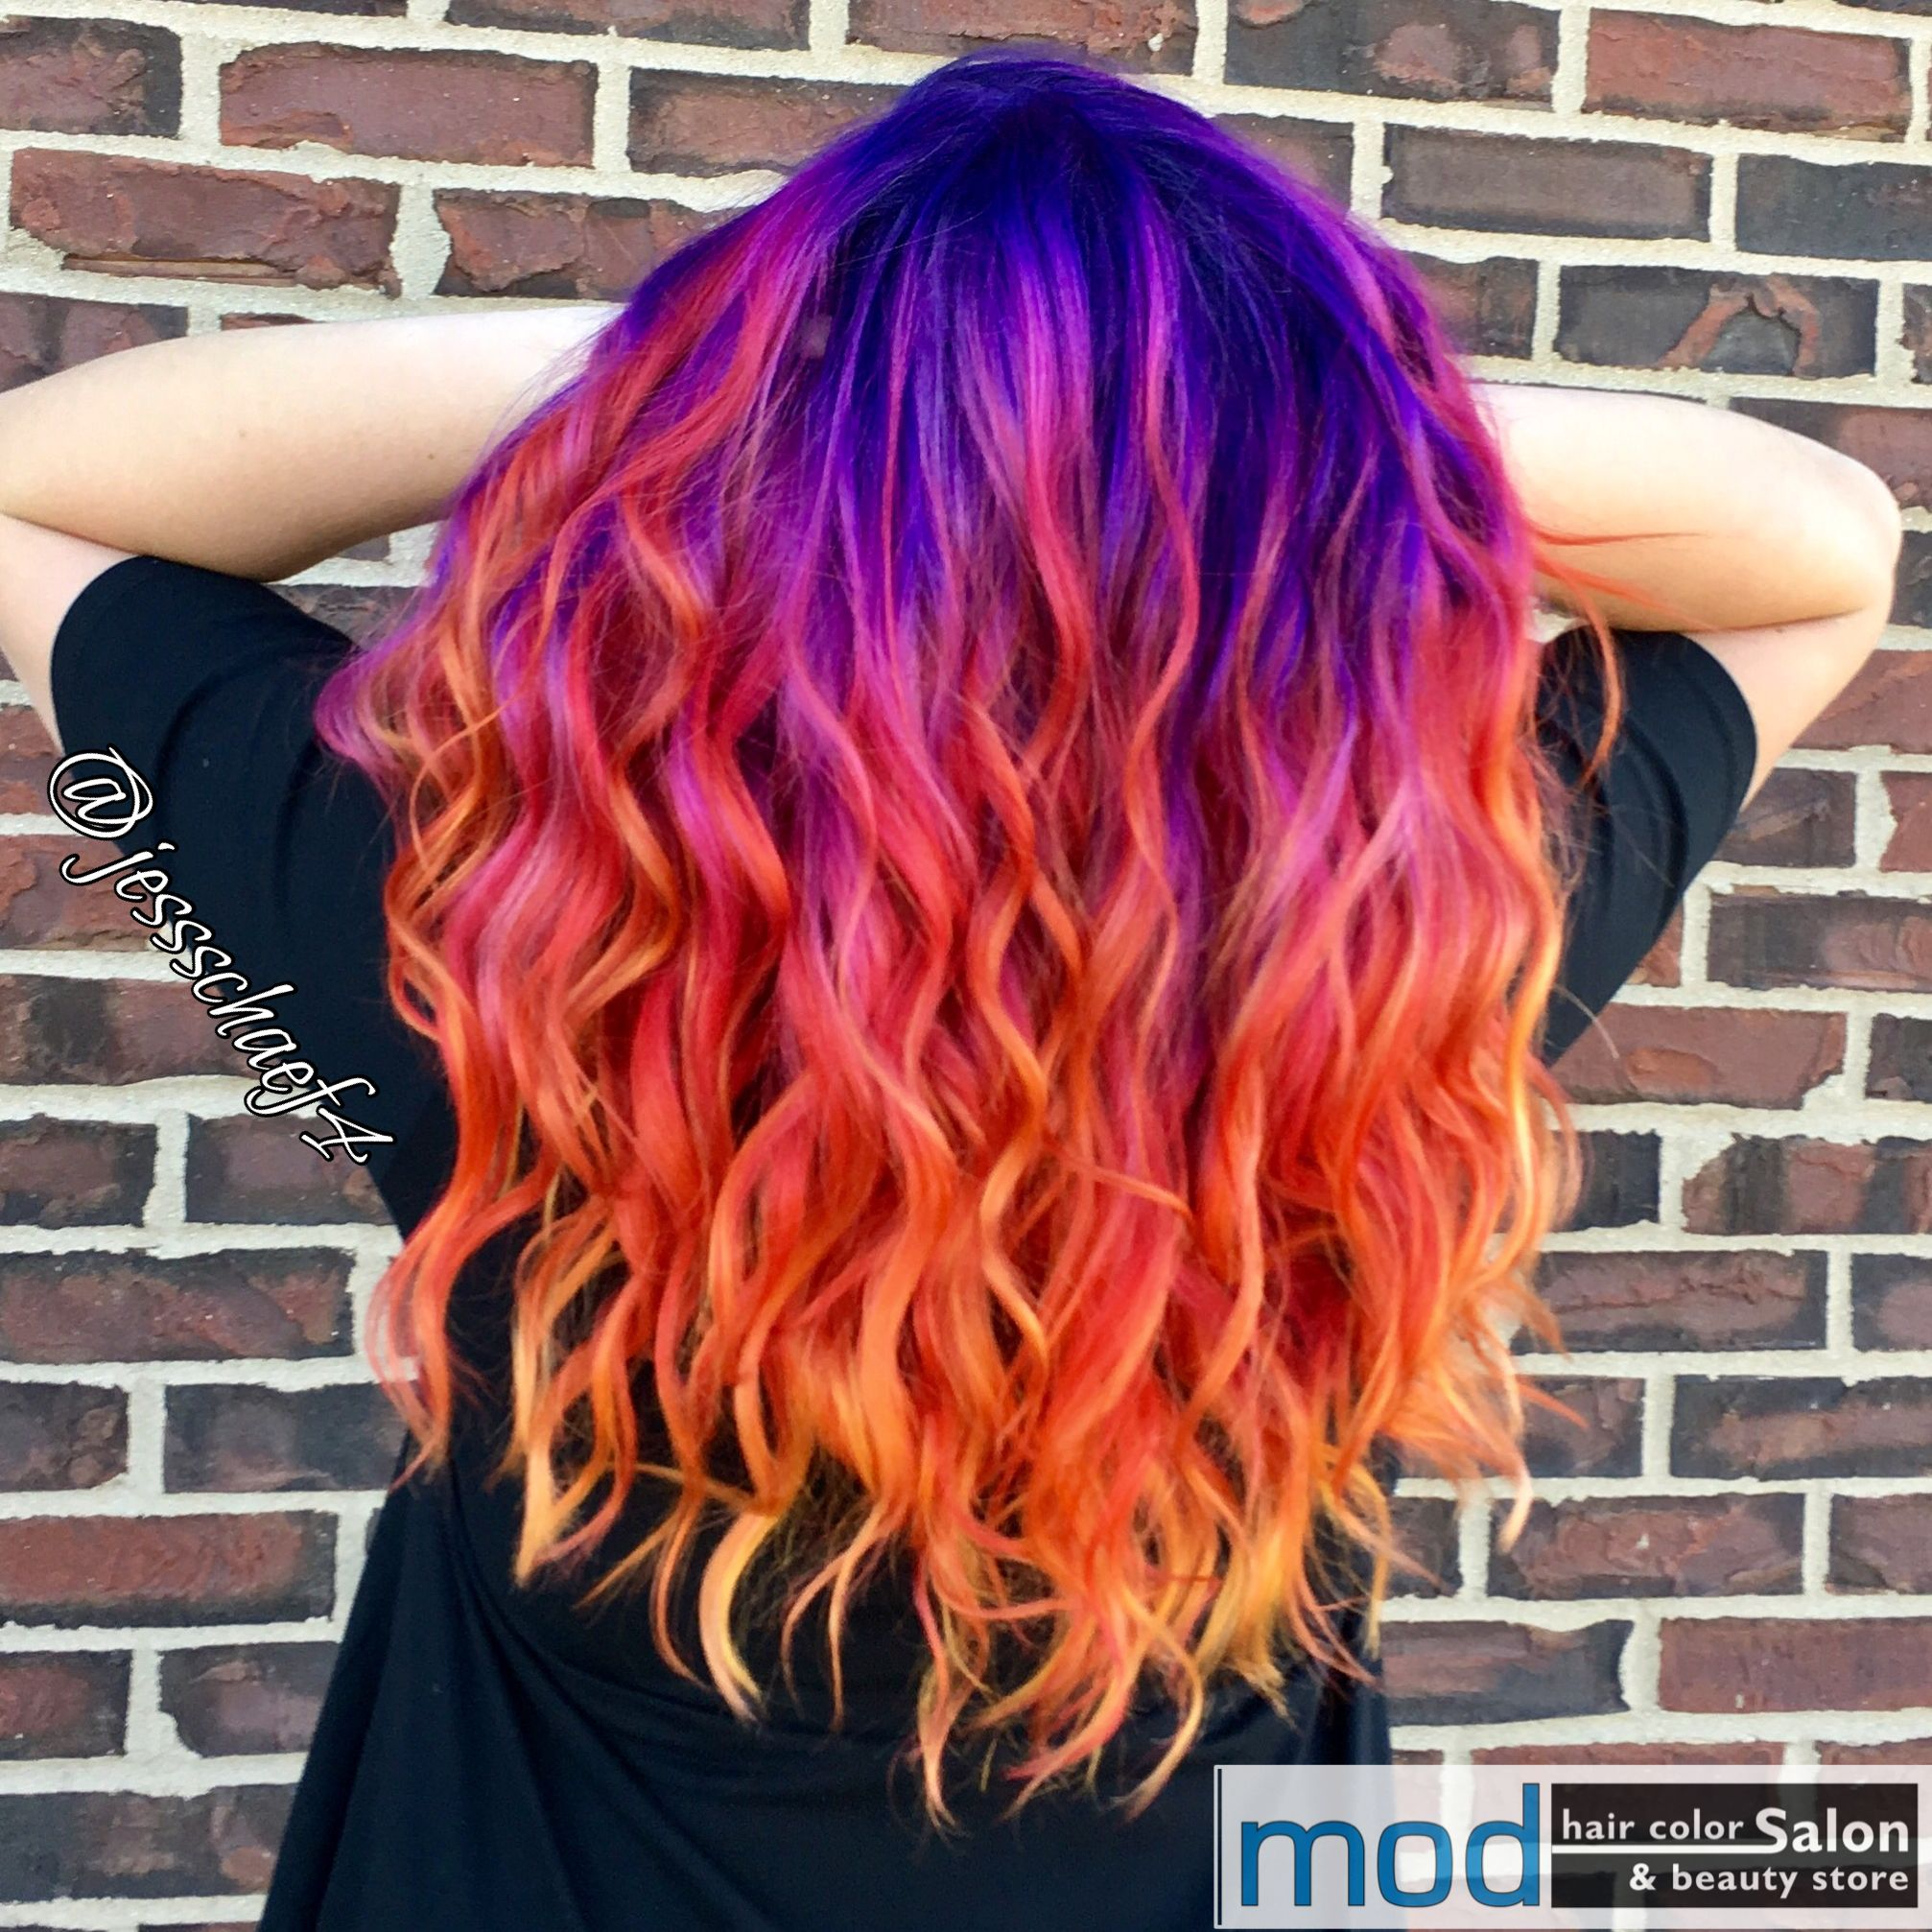 The team at mod loves color we are loving these bright locks